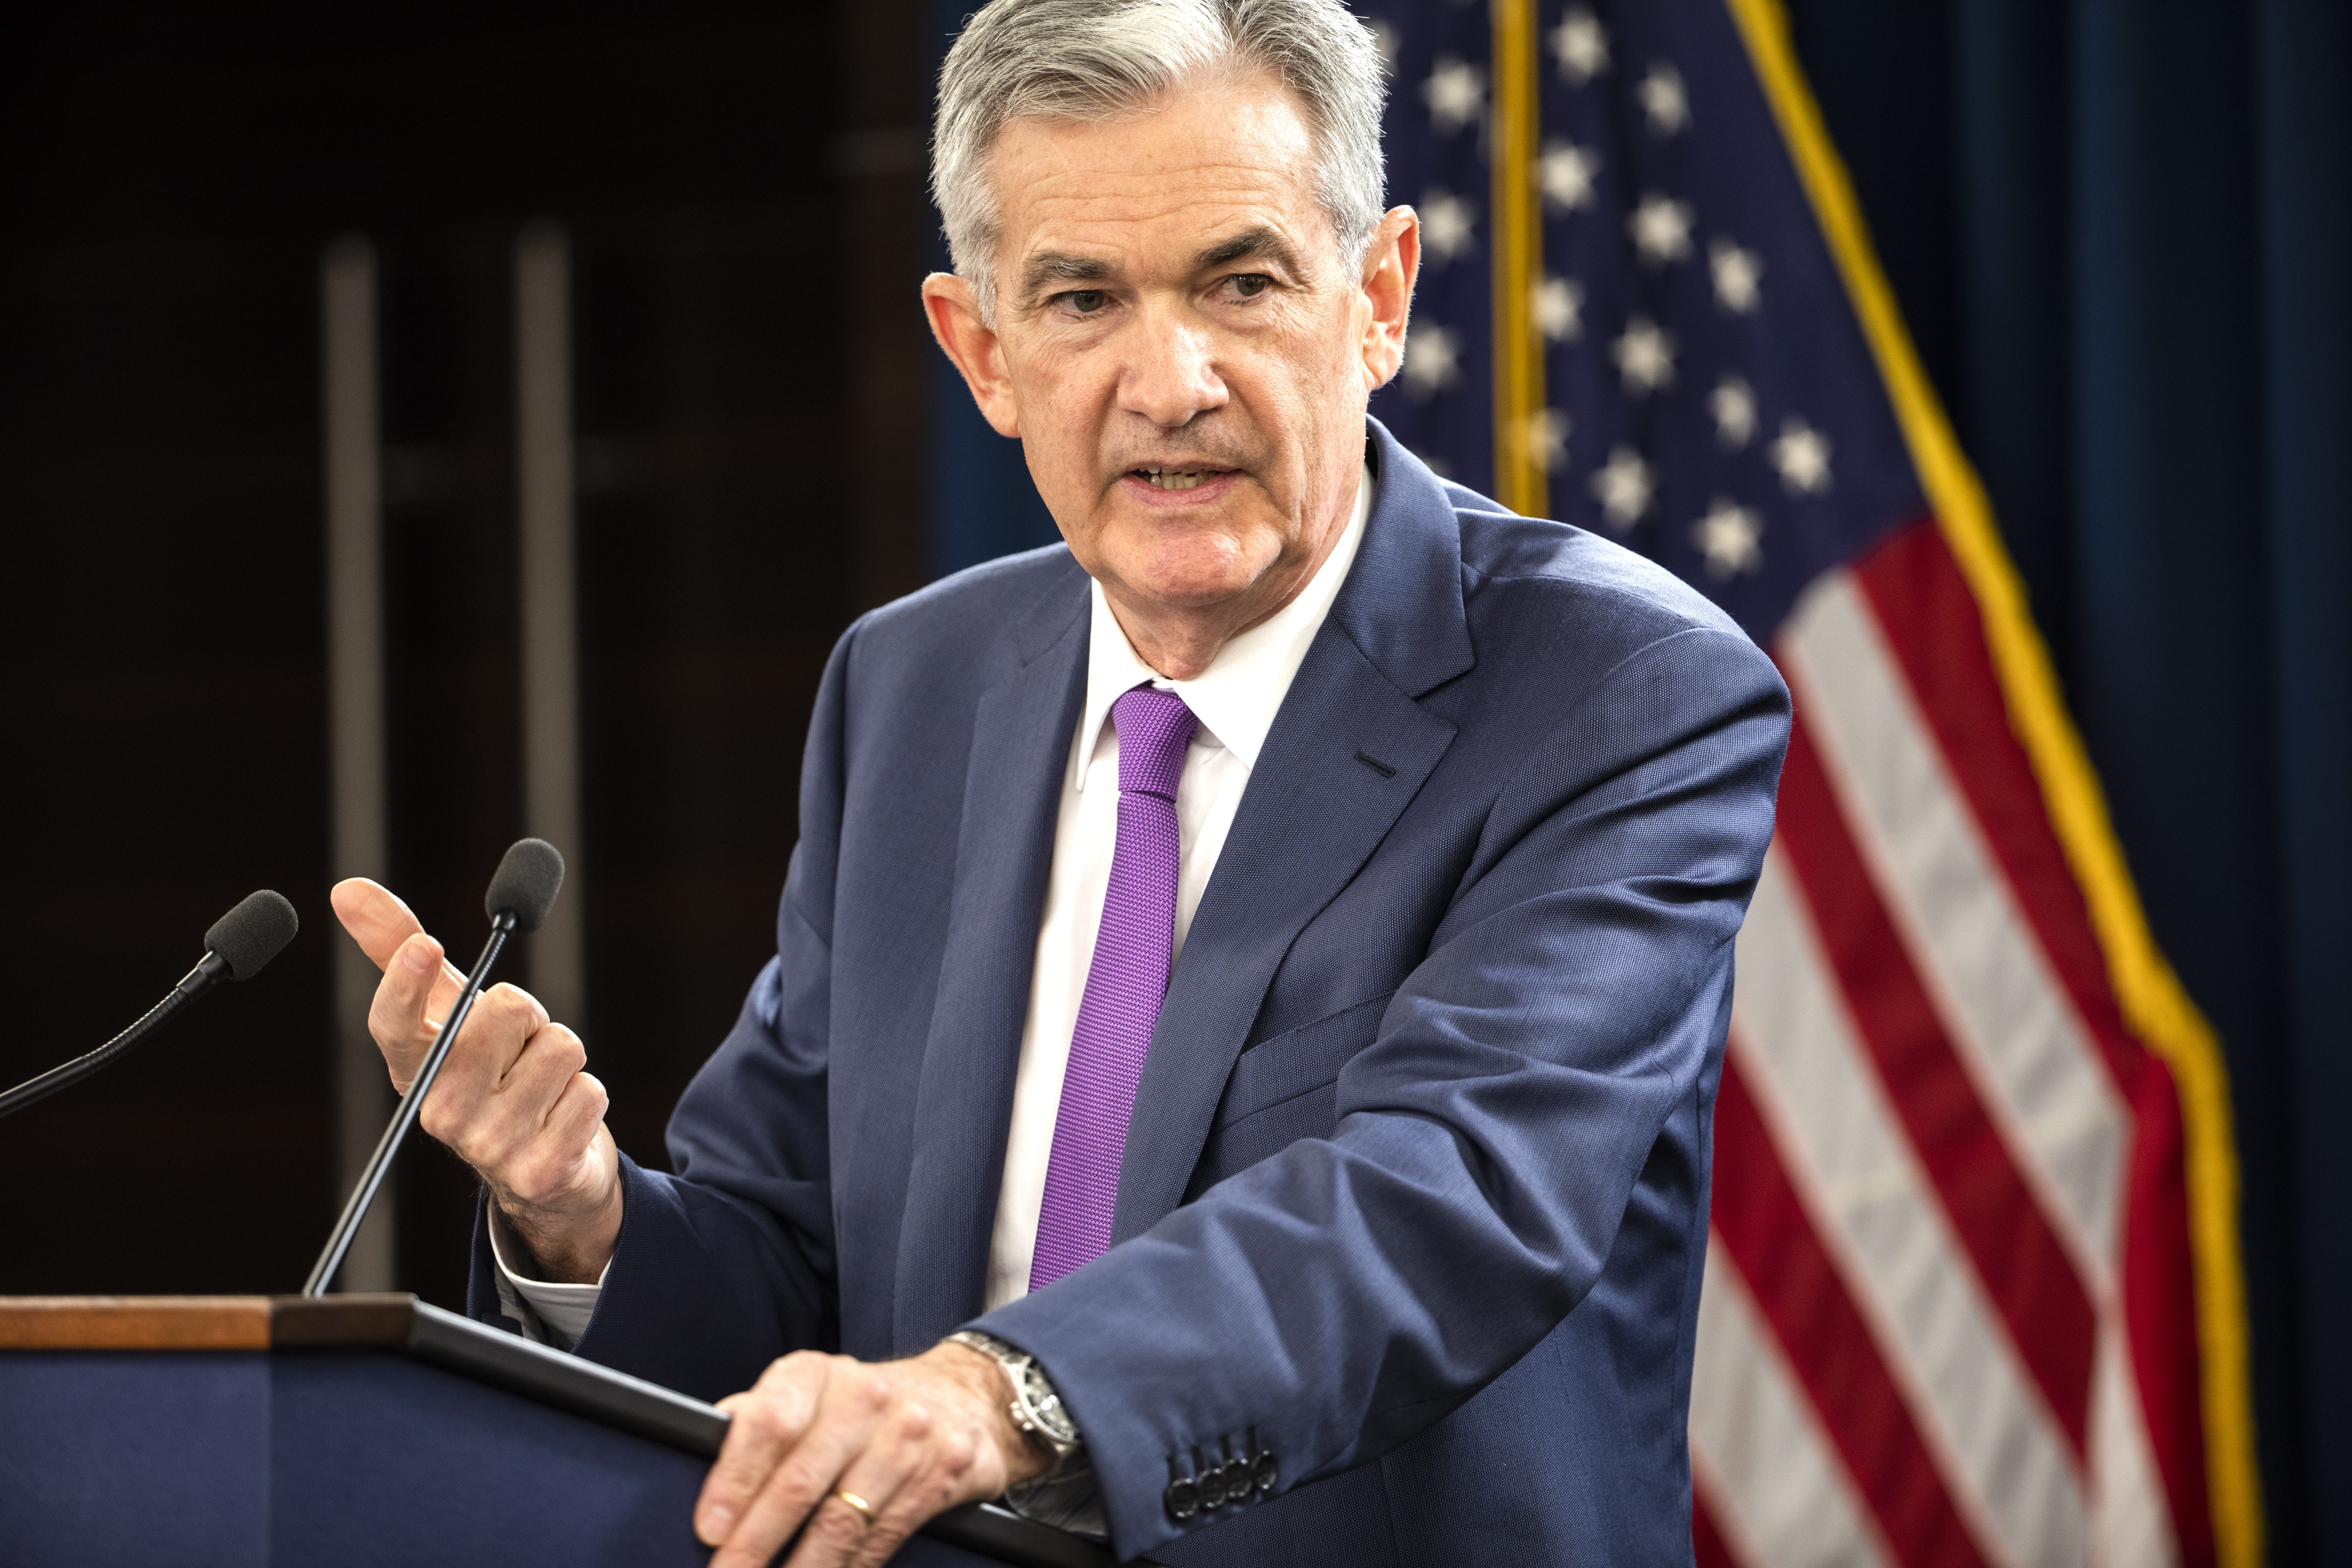 Federal Reserve Board Chairman Jerome Powell announces the Fed is raising interest rates